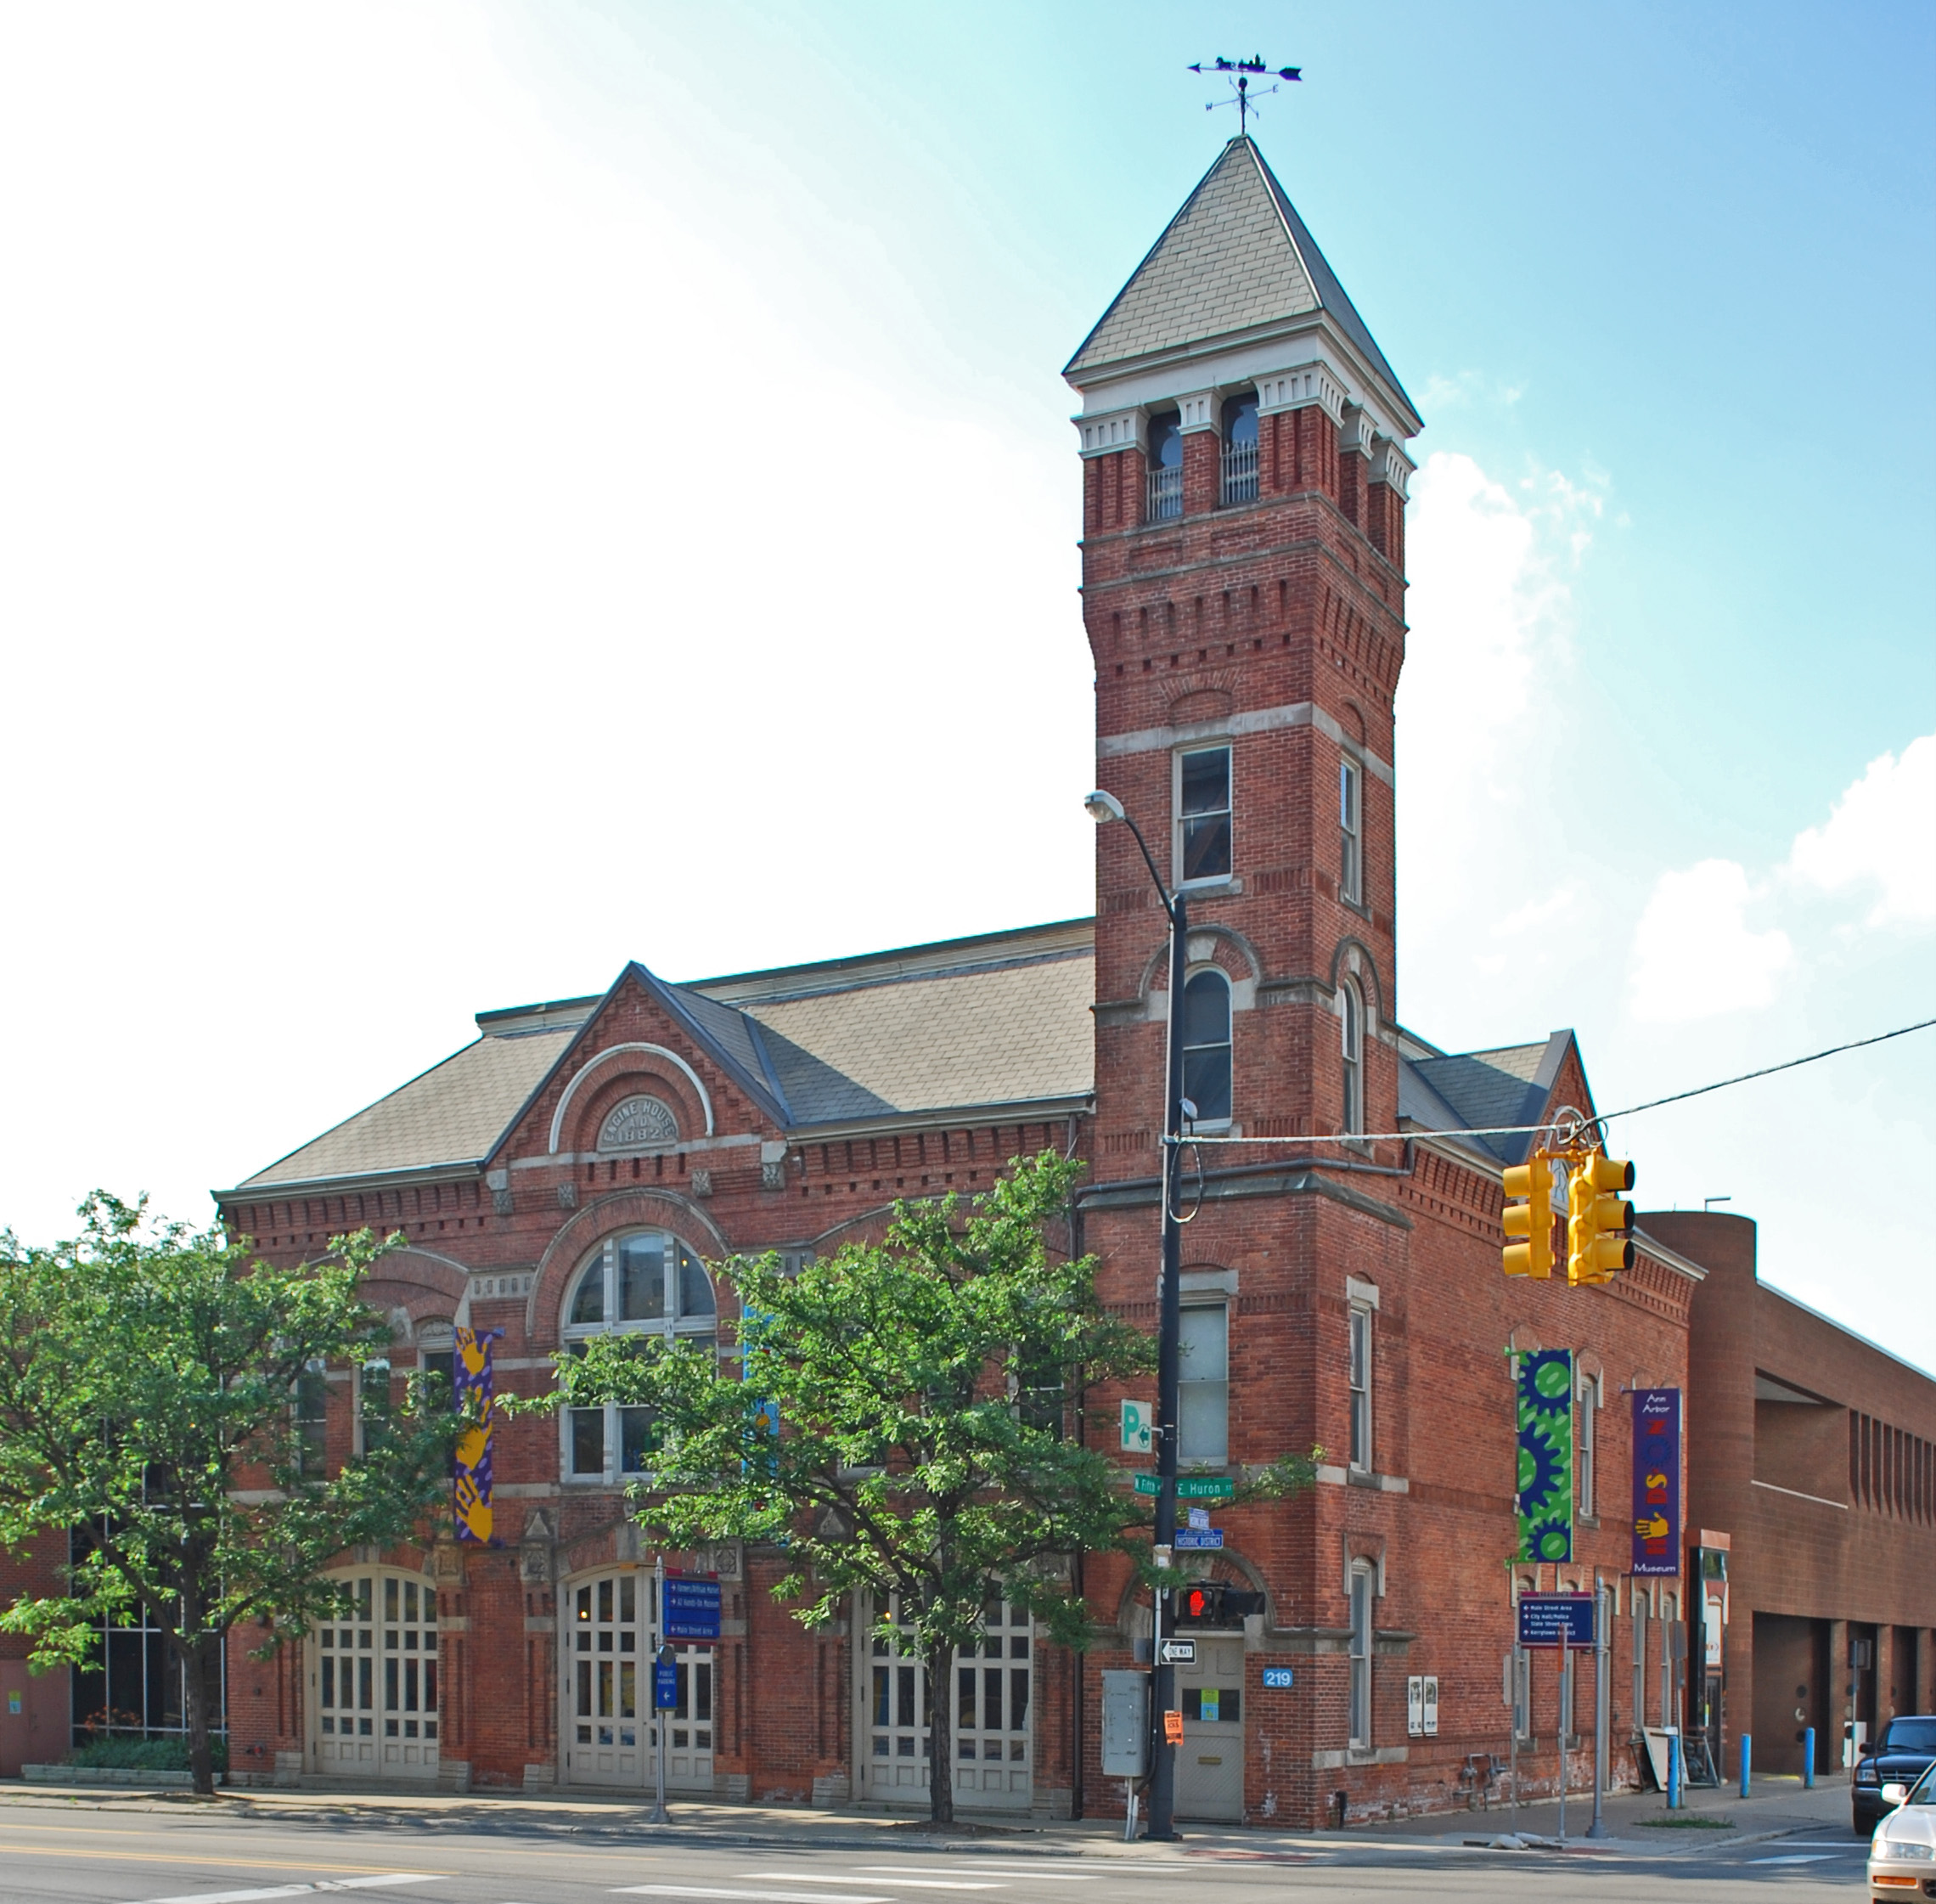 The museum opened in the Central Fire Station in 1982, 100 years after it was built.